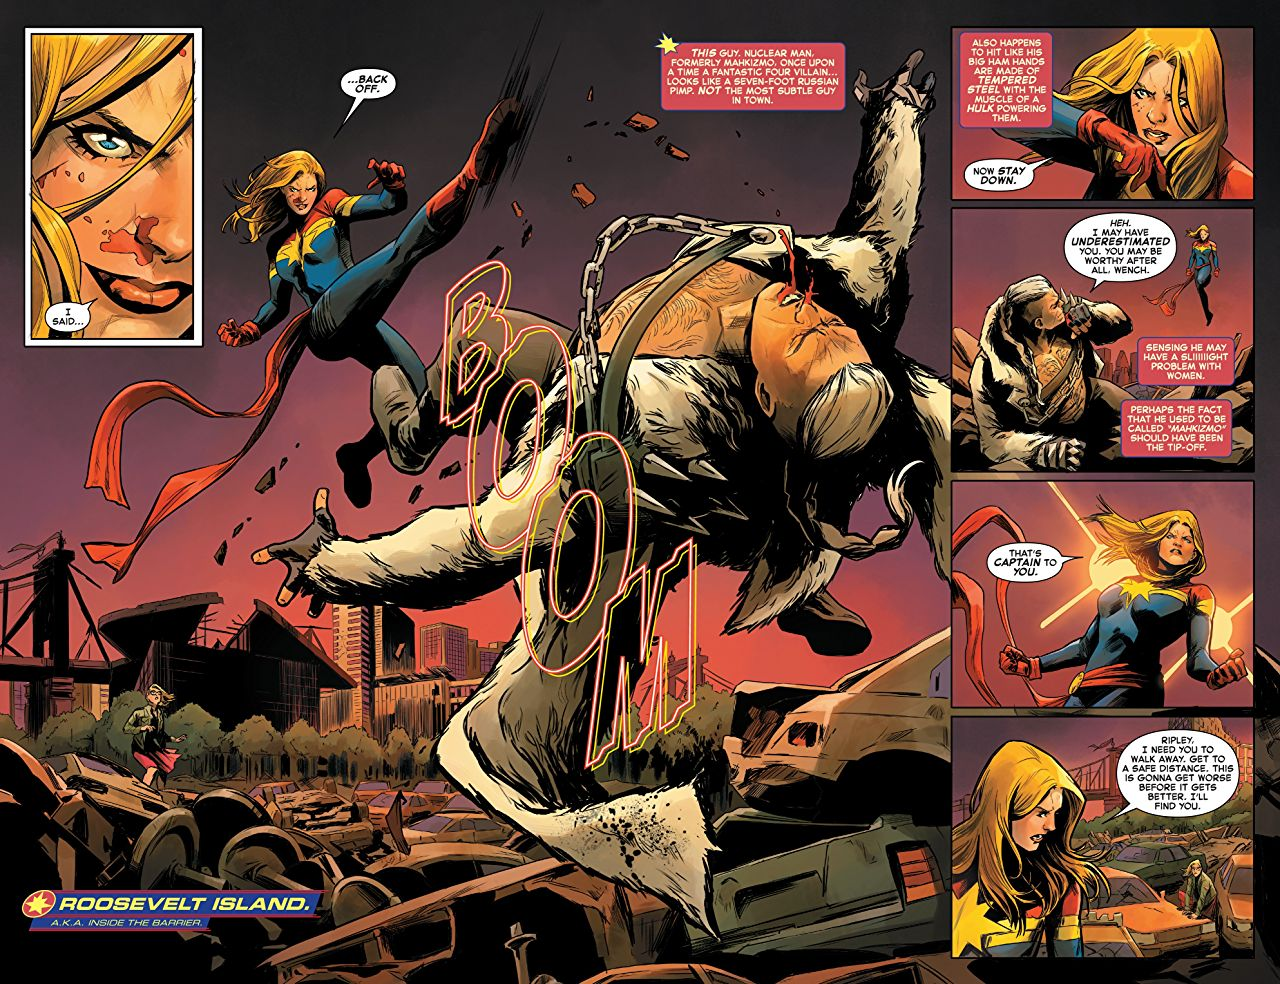 Kelly Thompson and Carmen Carnero deliver a high-octane starting point for Carol Danvers' new run of adventures.